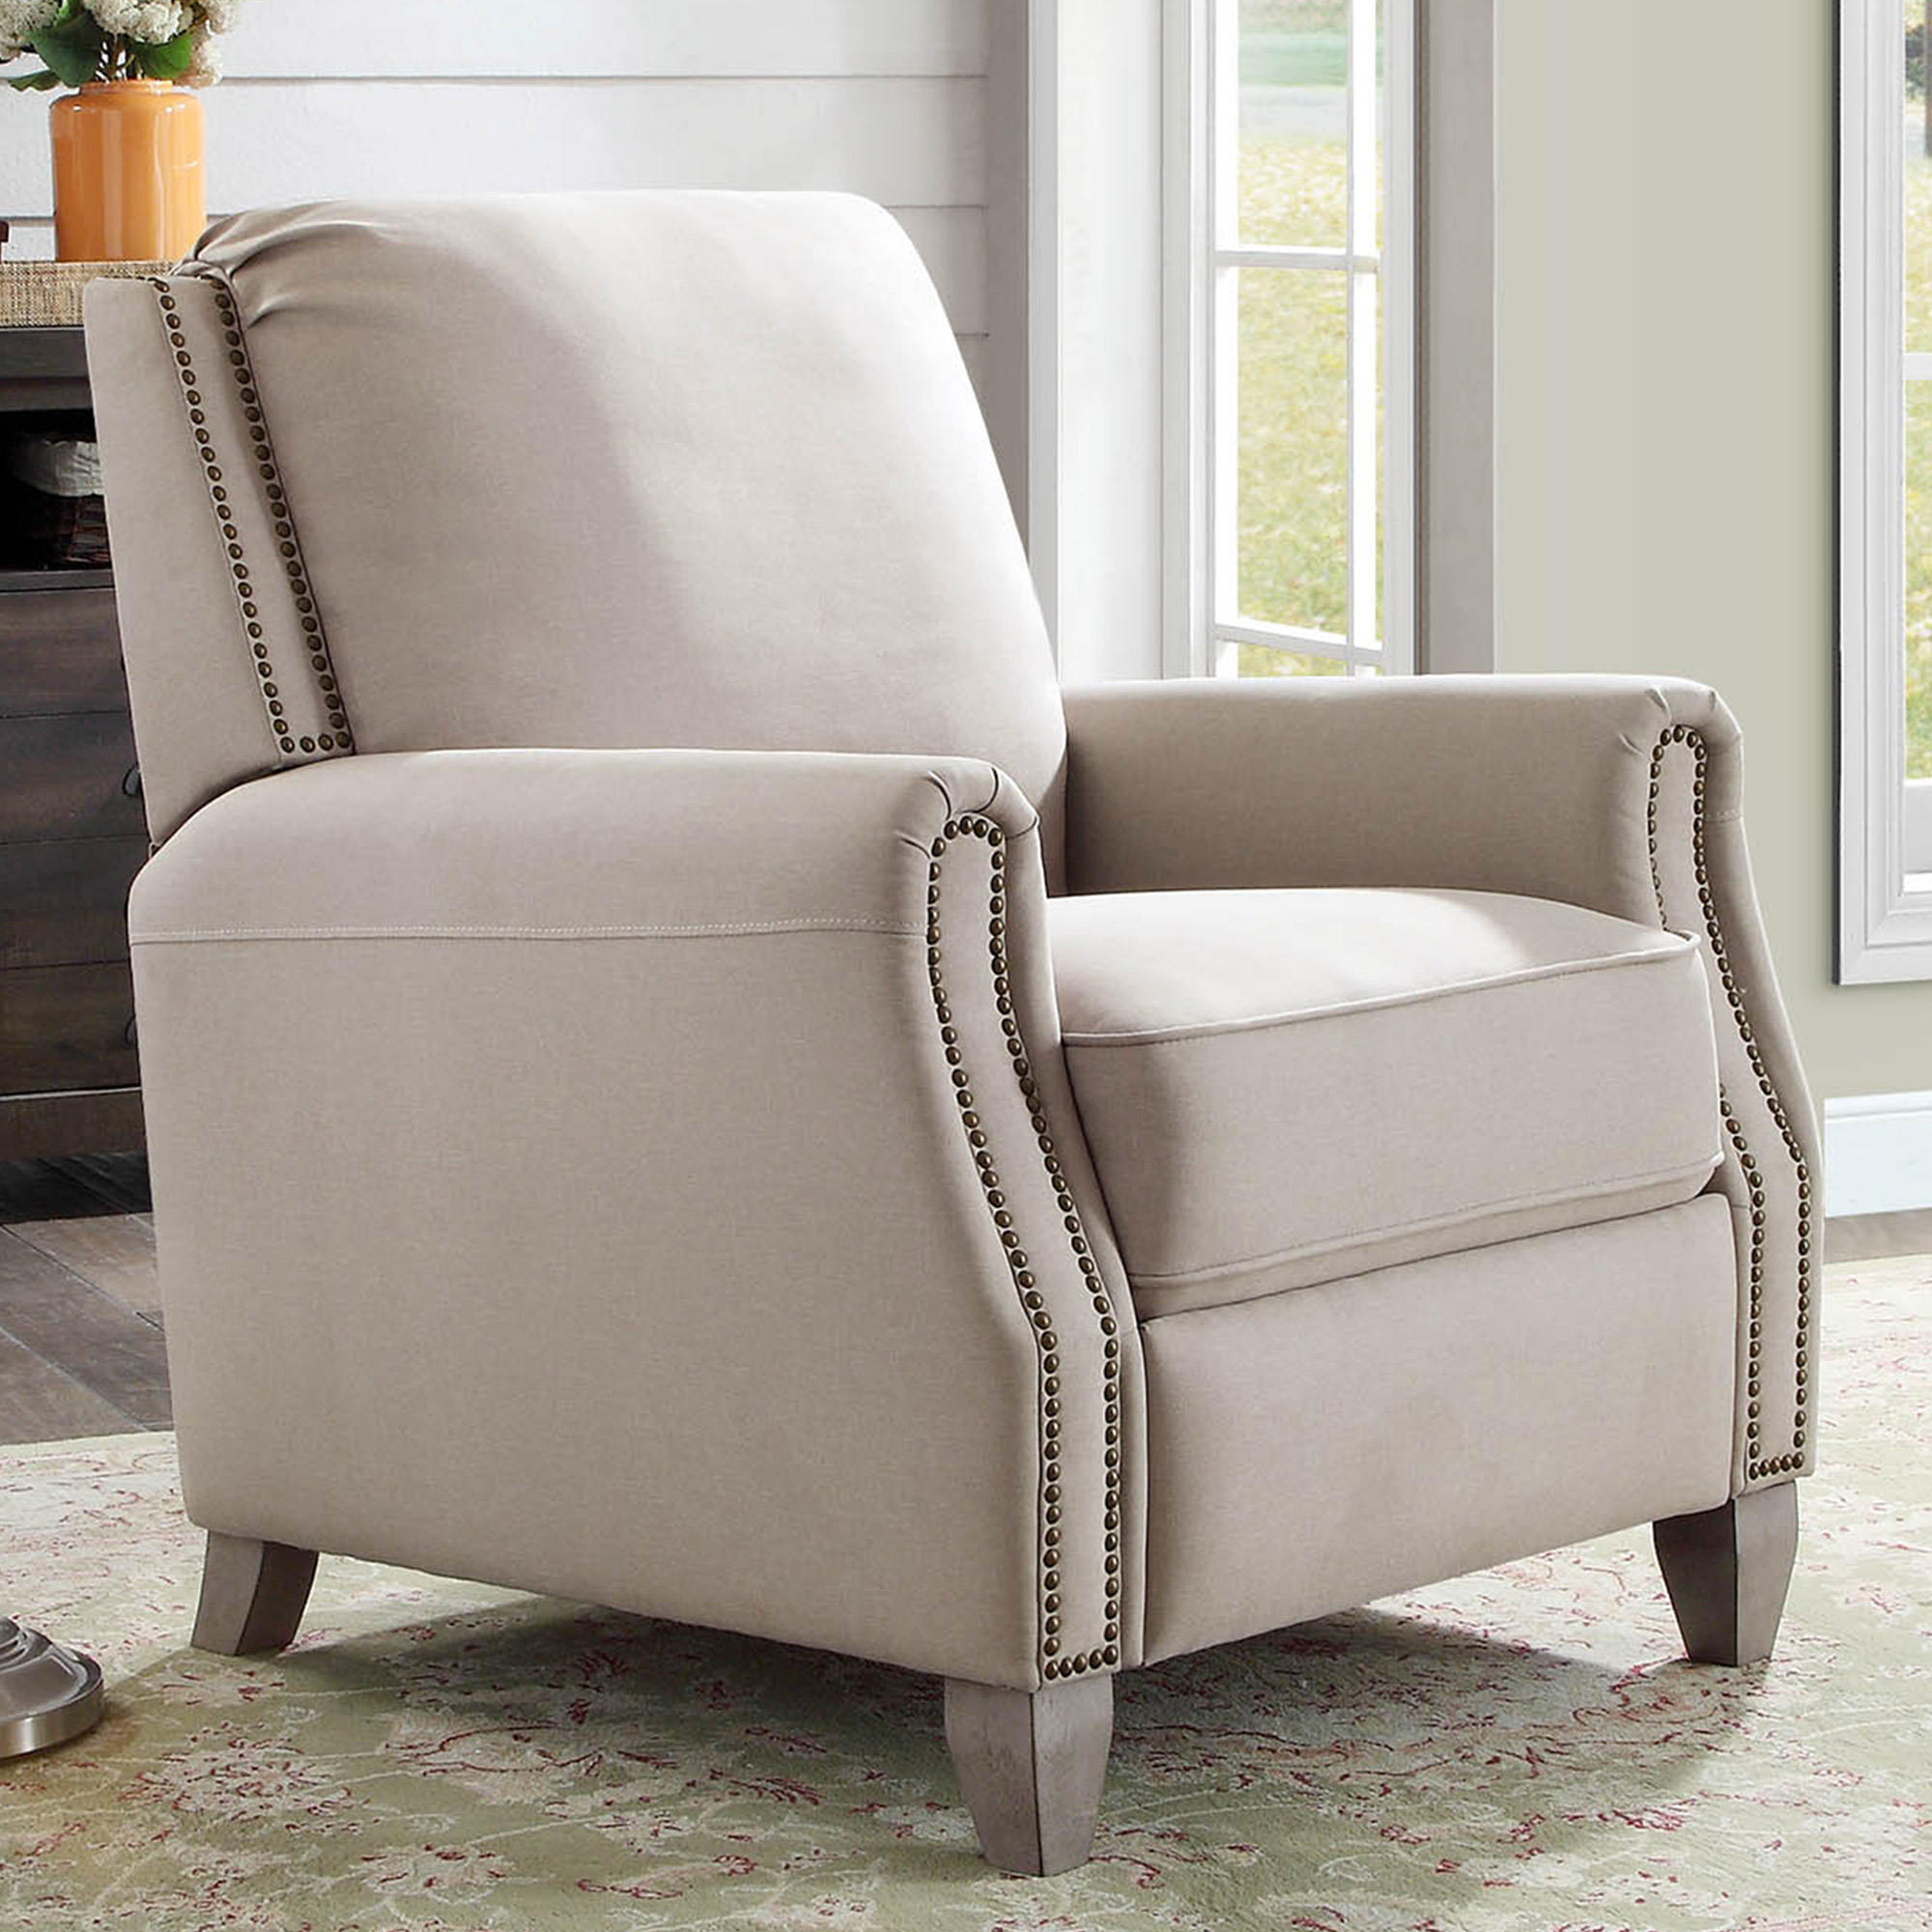 better homes and gardens recliner. better homes \u0026 gardens pushback recliner, beige fabric upholstery with bronze nail-head trim and recliner d